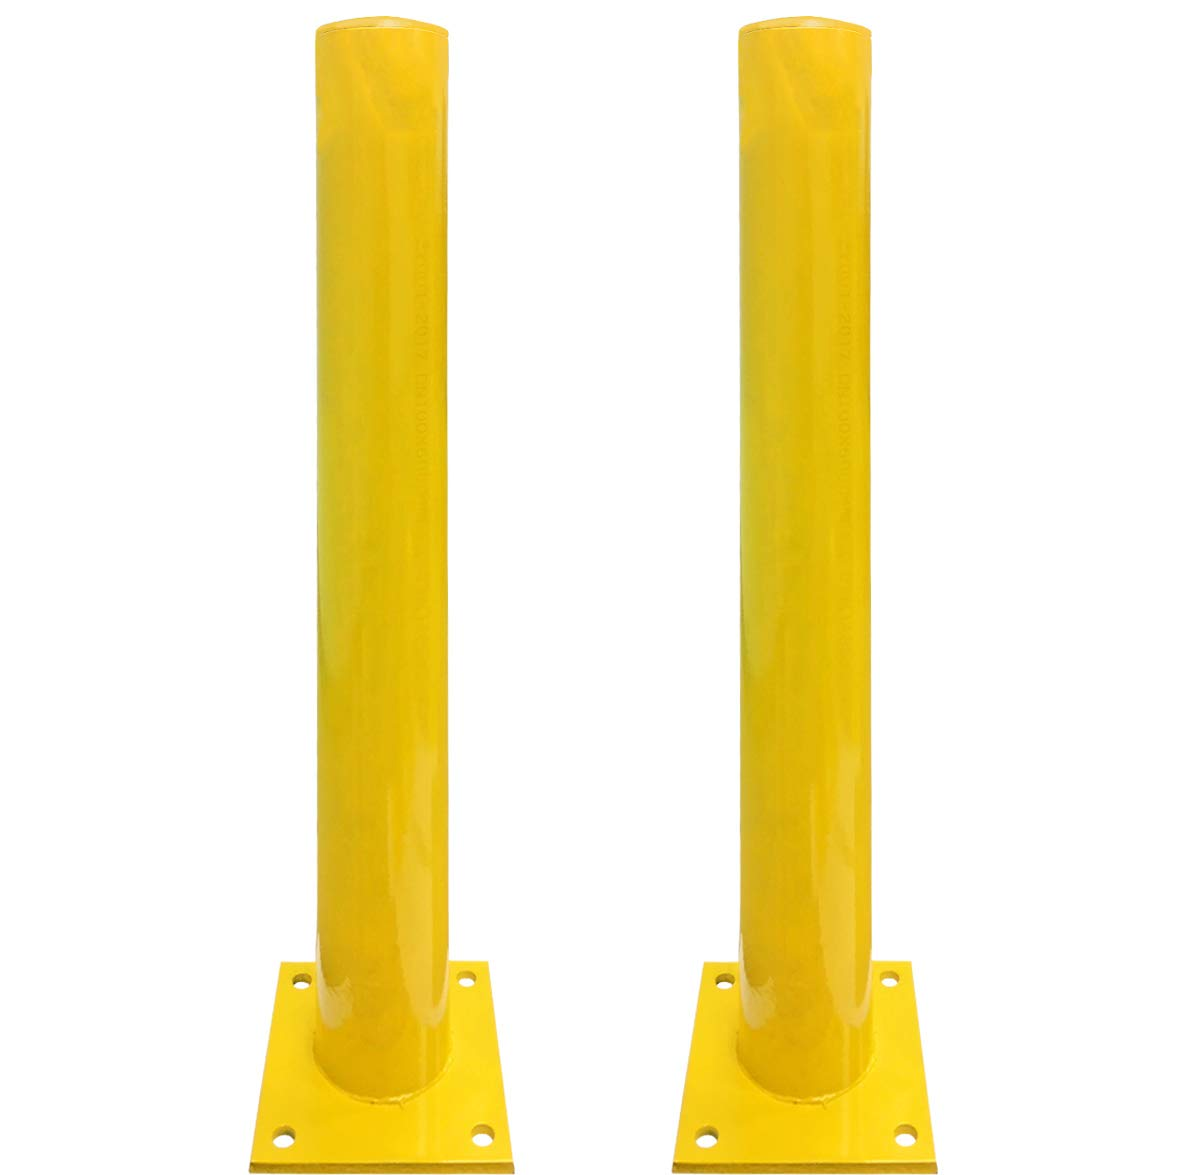 Electriduct 3 Feet Steel Pipe Safety Bollard Post Yellow - Parking Lot Traffic Barrier (36'' Height - 4.5'' OD) - Pack of 2